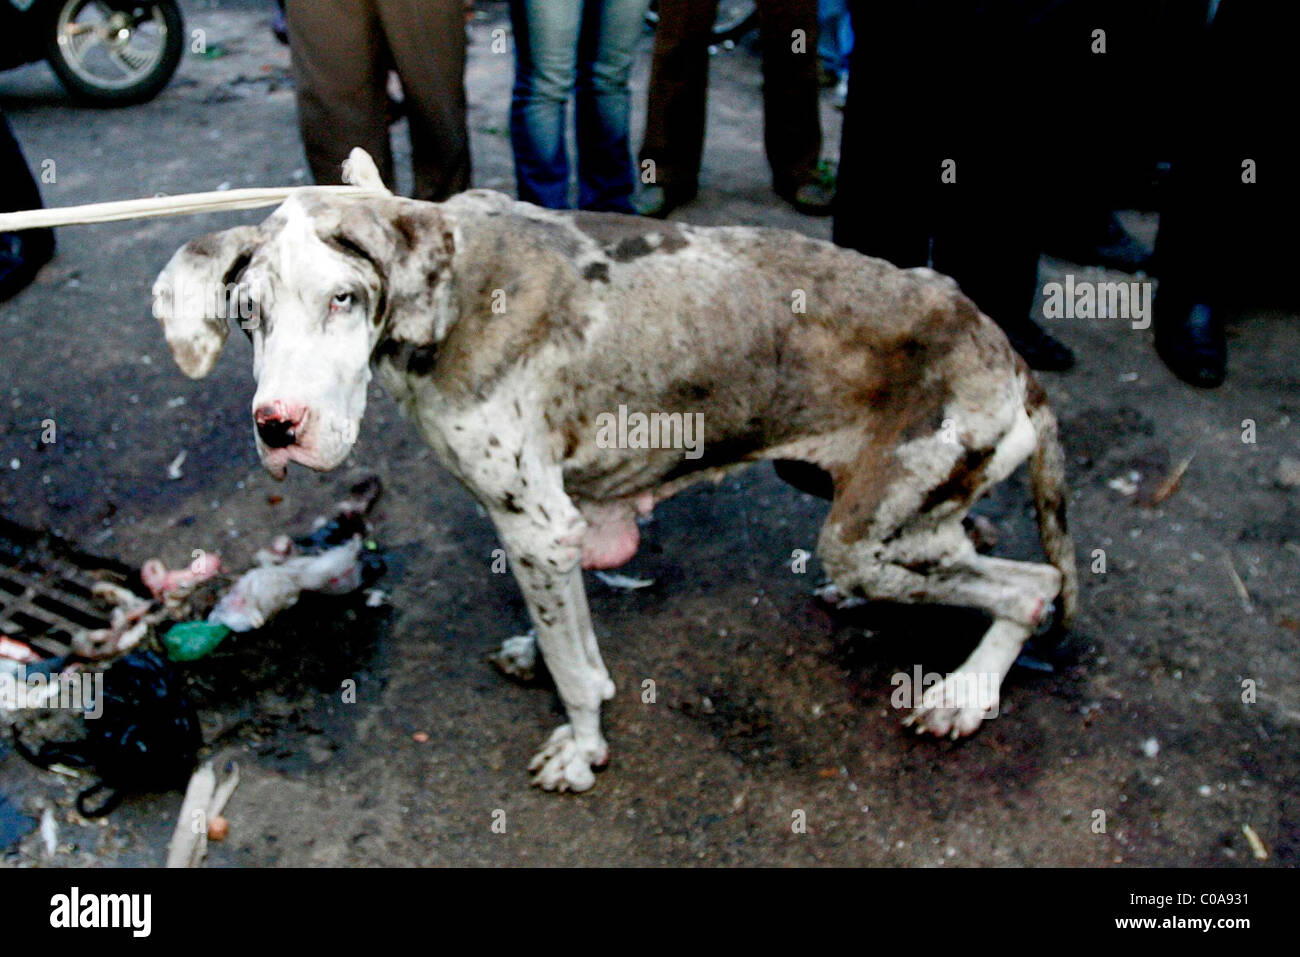 CHINA BLASTED AFTER DOG SLAUGHTER Animal-rights ... - photo#24